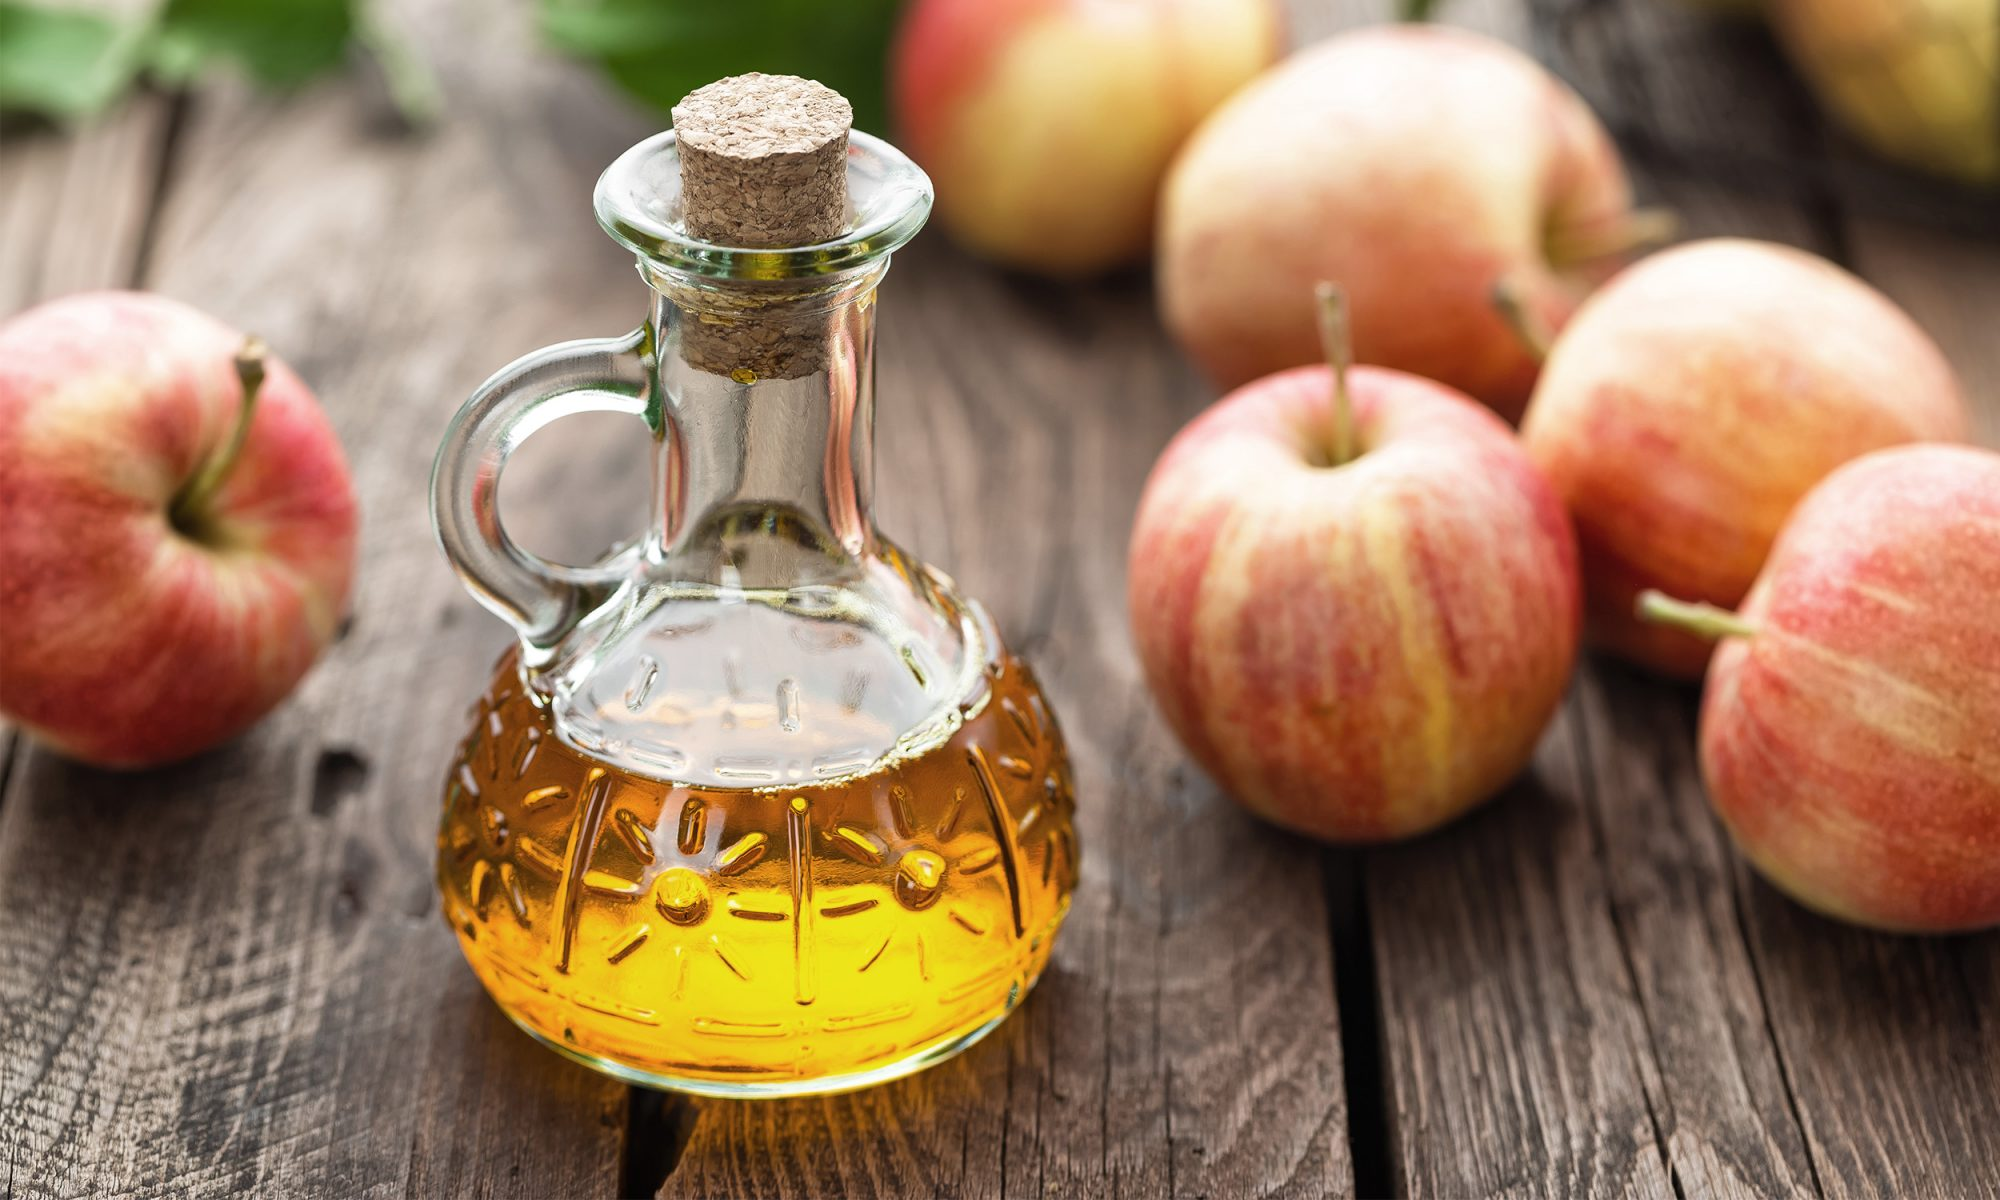 EC: What Are the Health Benefits of Apple Cider Vinegar?